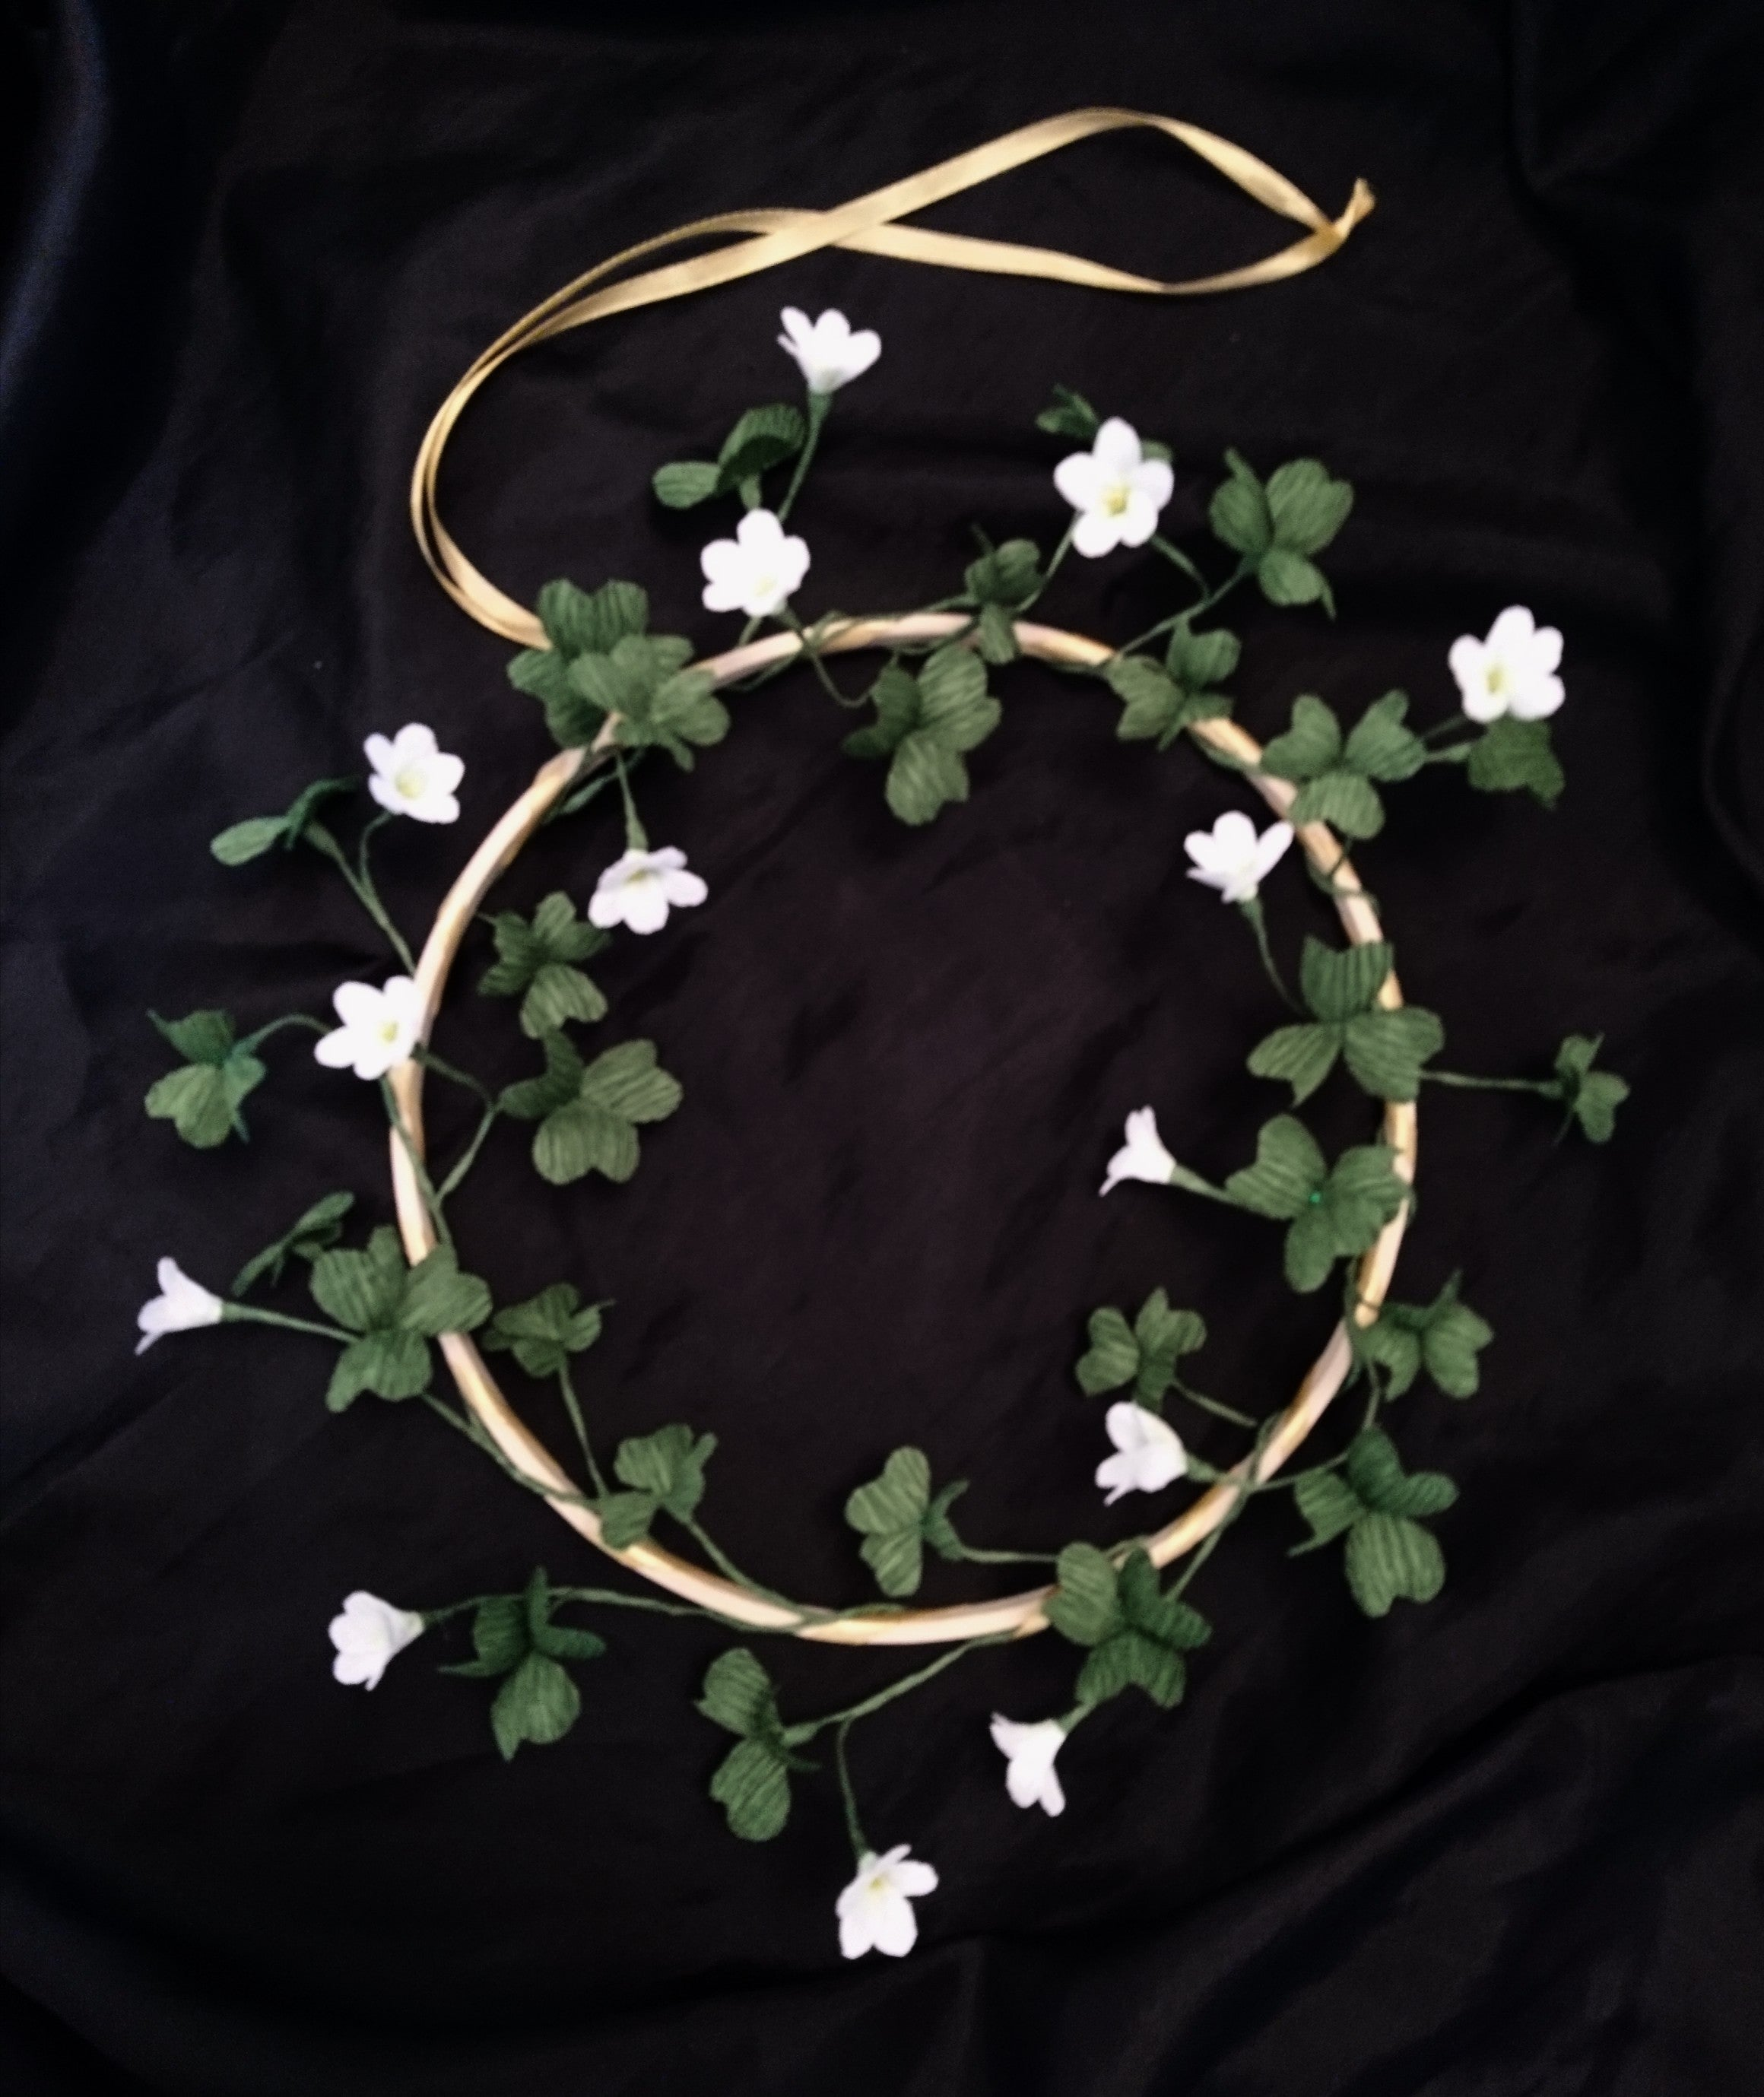 shamrock wreath by handmade paper garden